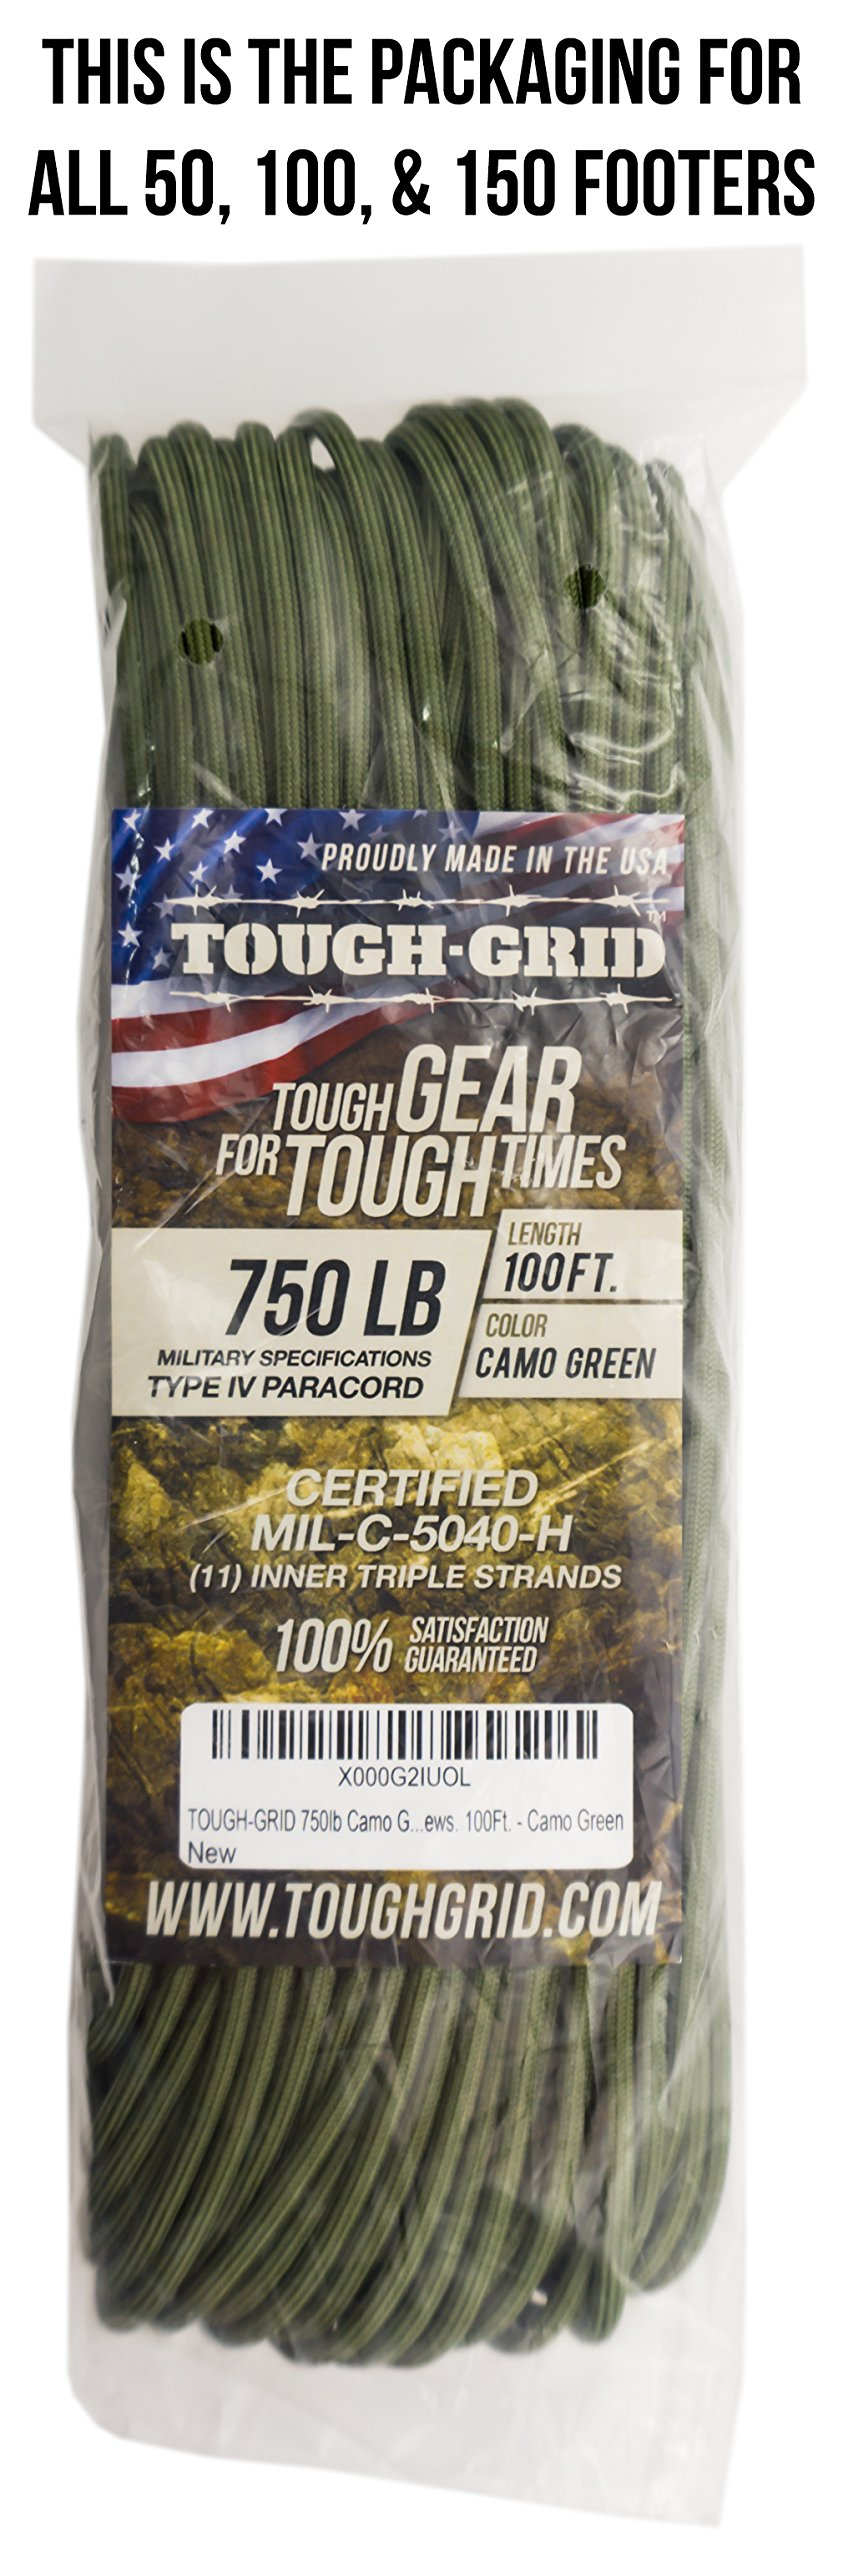 TOUGH-GRID 750lb Camo Green Paracord/Parachute Cord - Genuine Mil Spec Type IV 750lb Paracord Used by The US Military (MIl-C-5040-H) - 100% Nylon - Made in The USA. 50Ft. - Camo Green by TOUGH-GRID (Image #5)